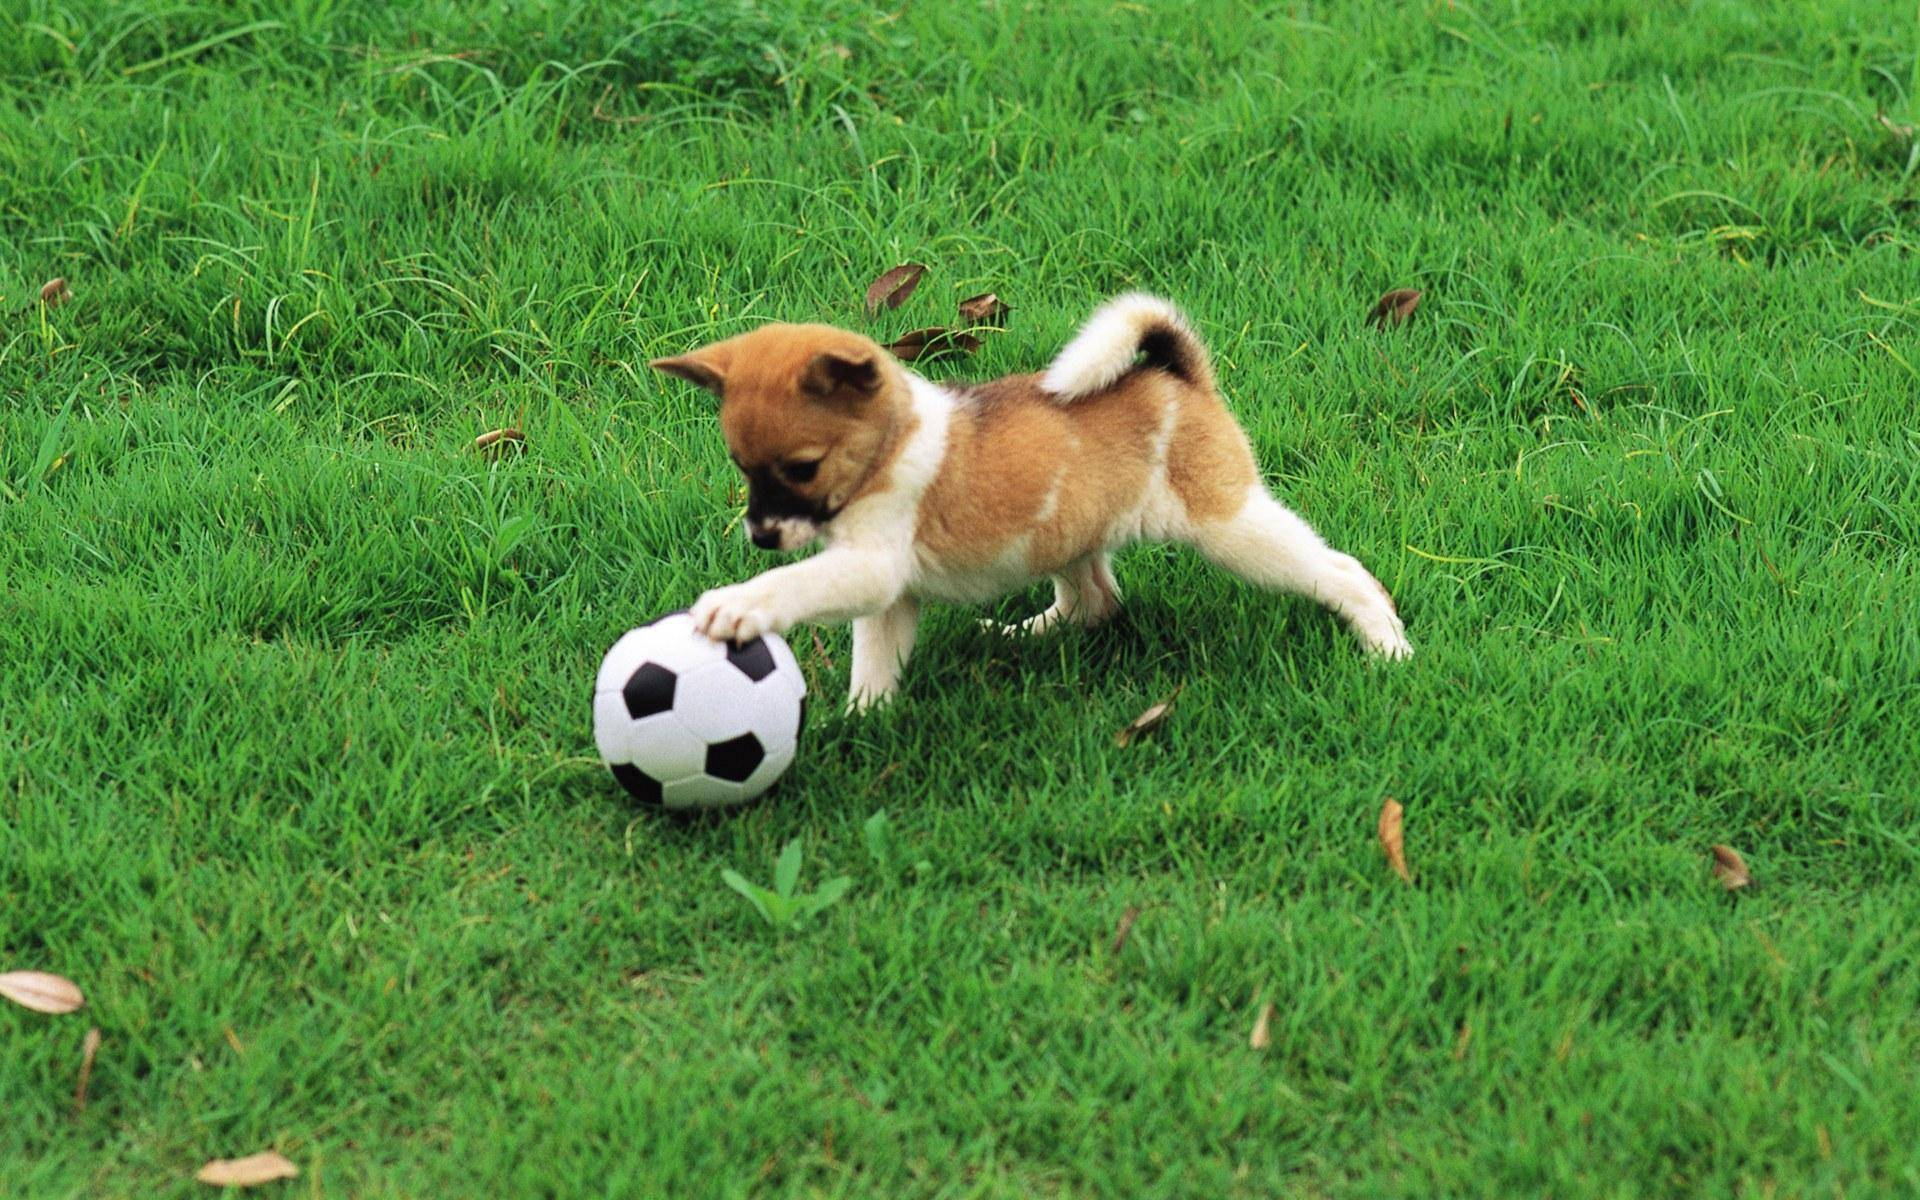 445831 dogs dog playing soccer